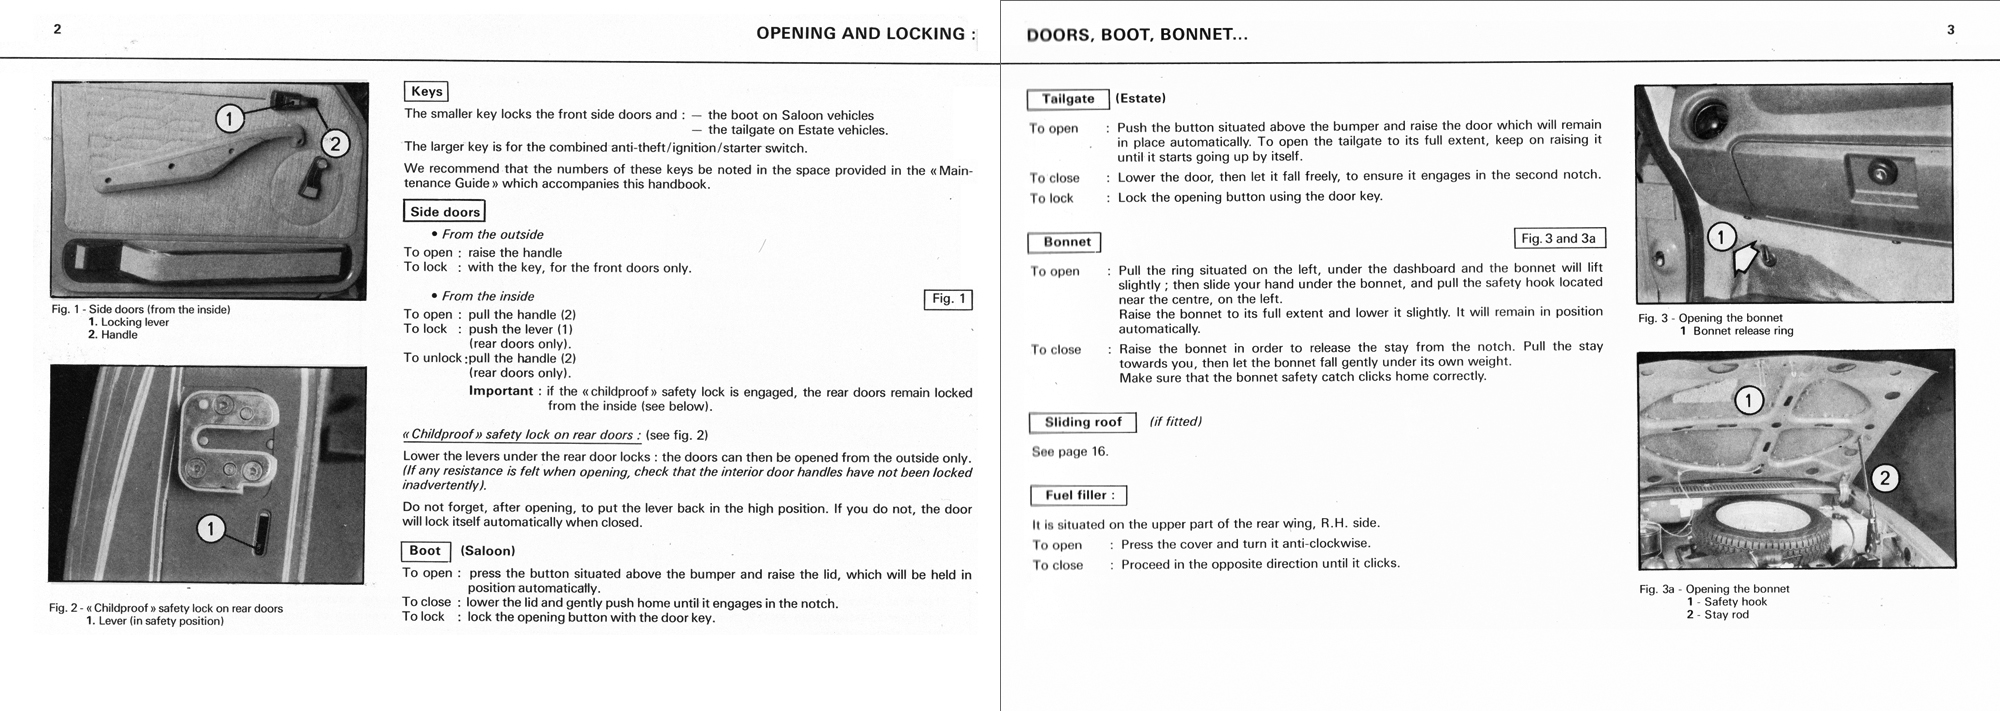 1978 Citroën GS owner's manual Page 1